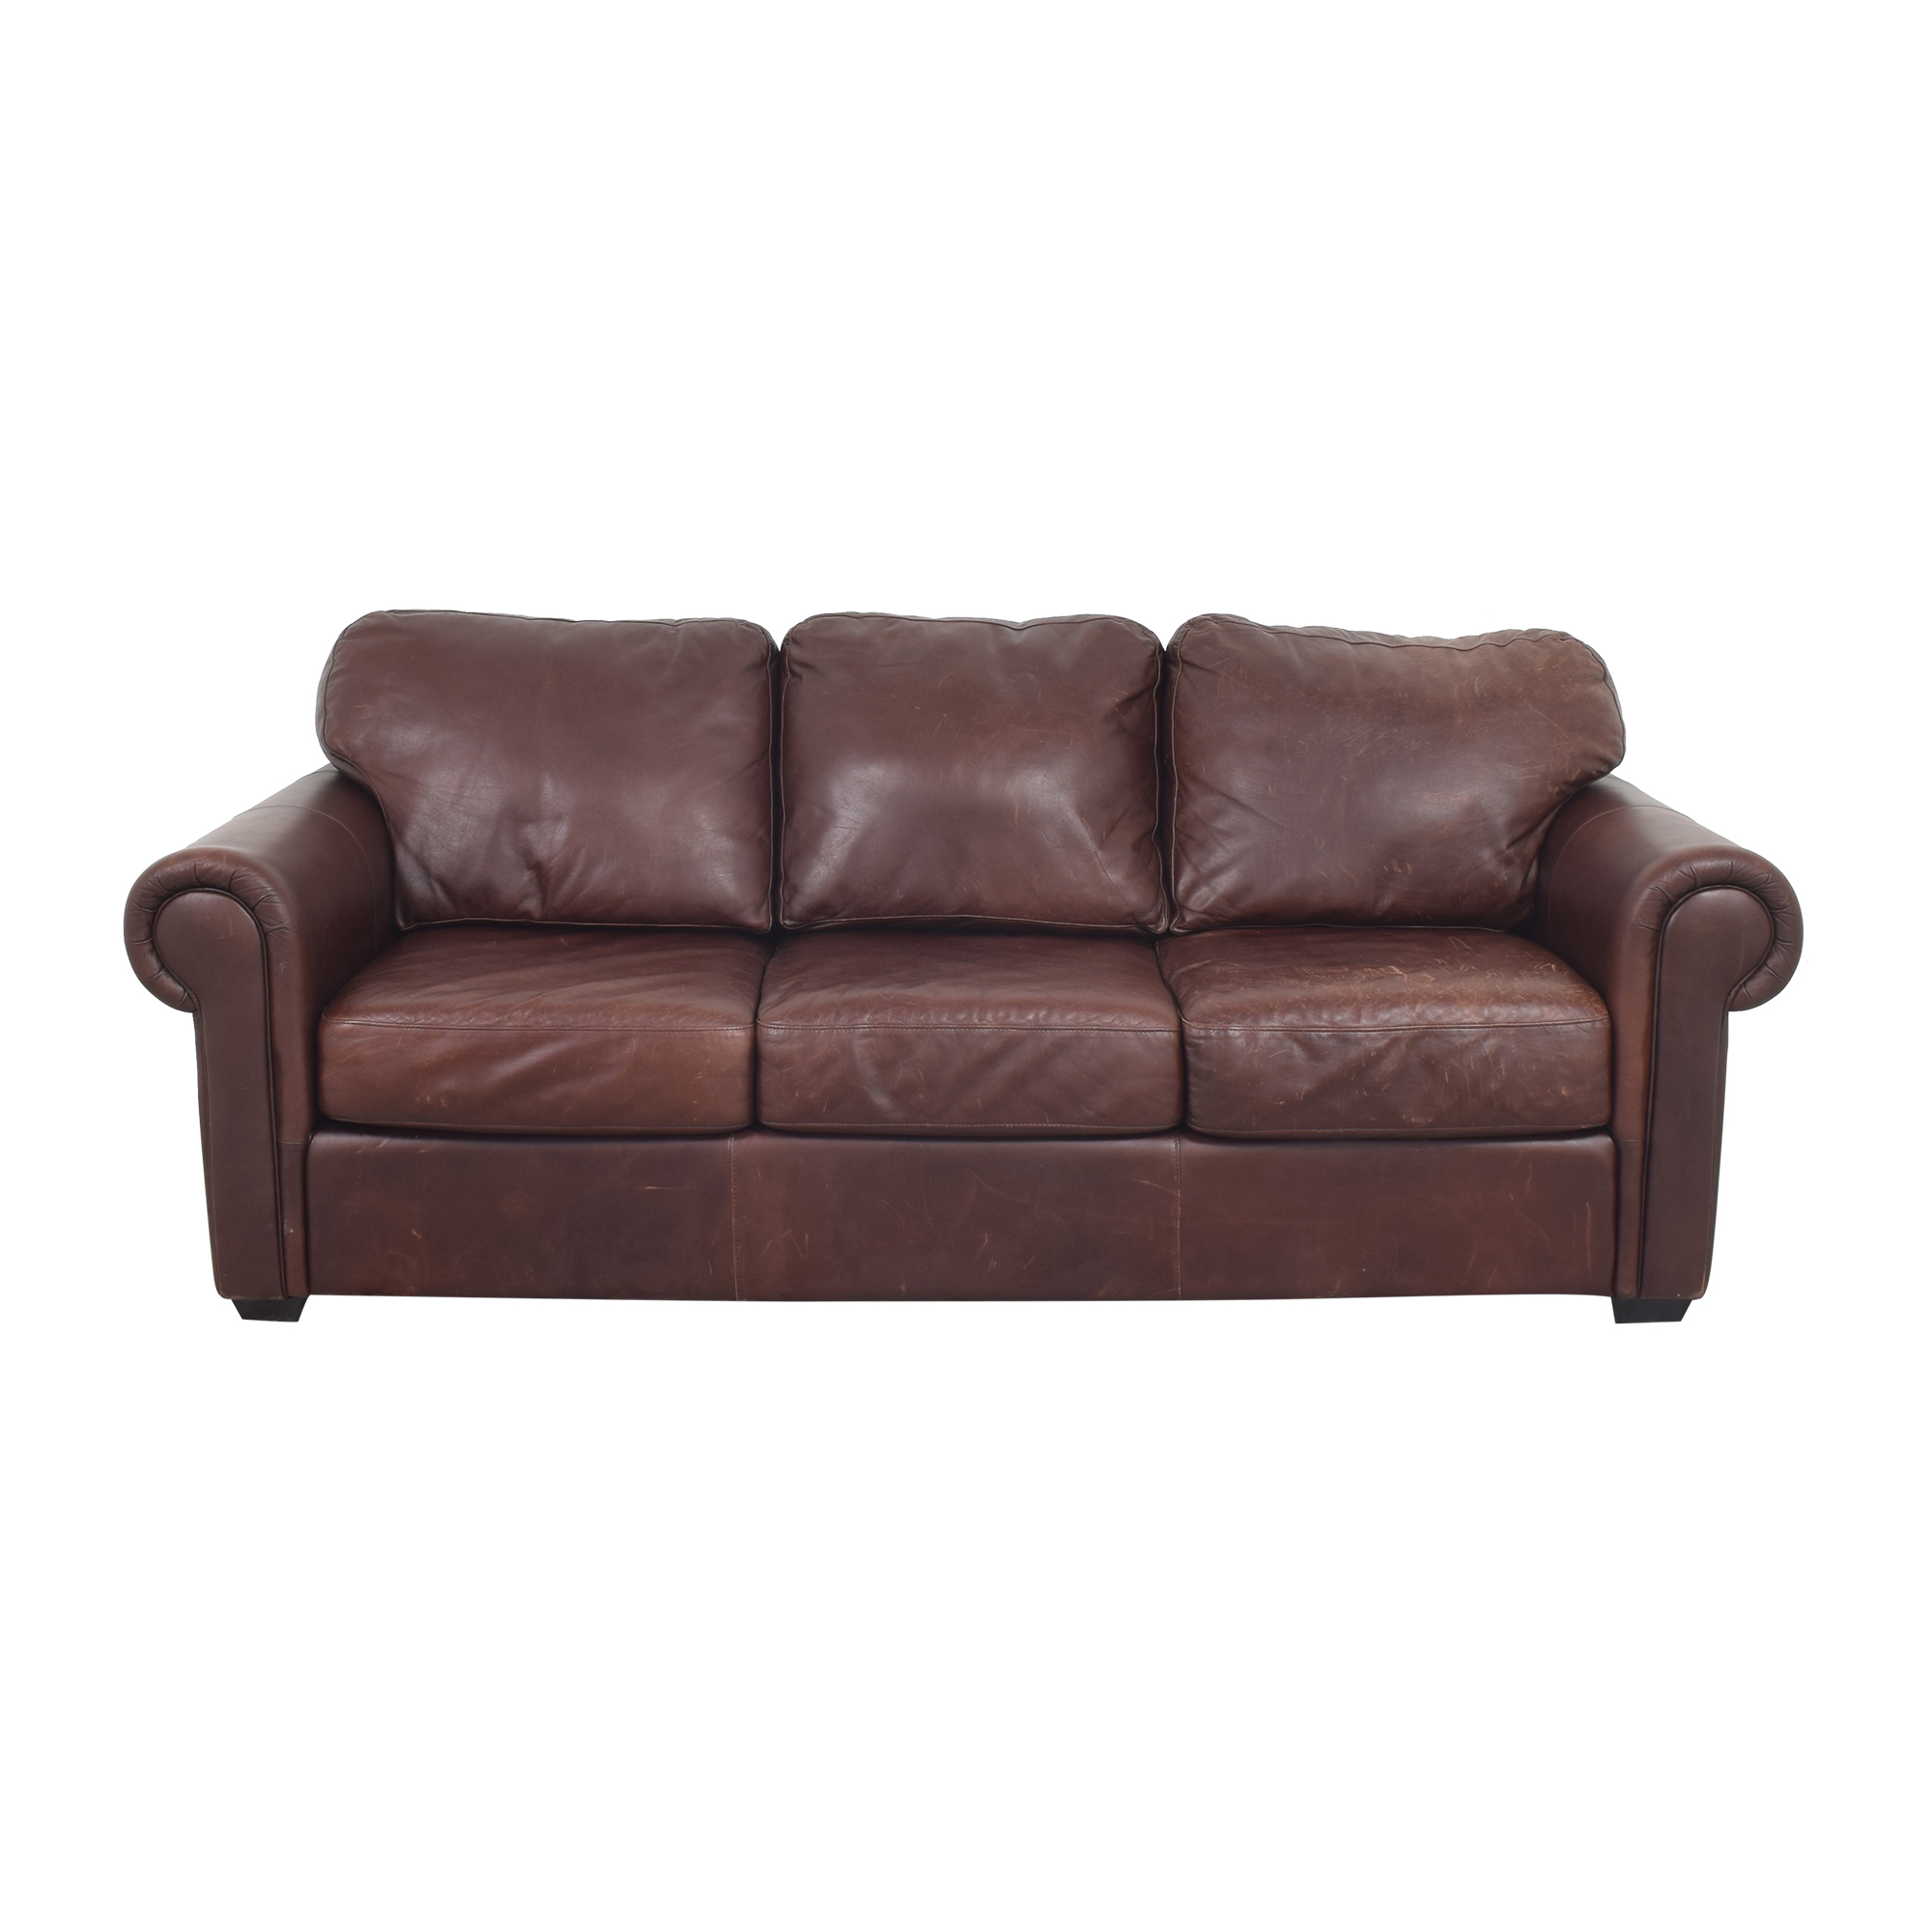 Campio Furniture Campio Furniture Bloor Roll Arm Sofa on sale